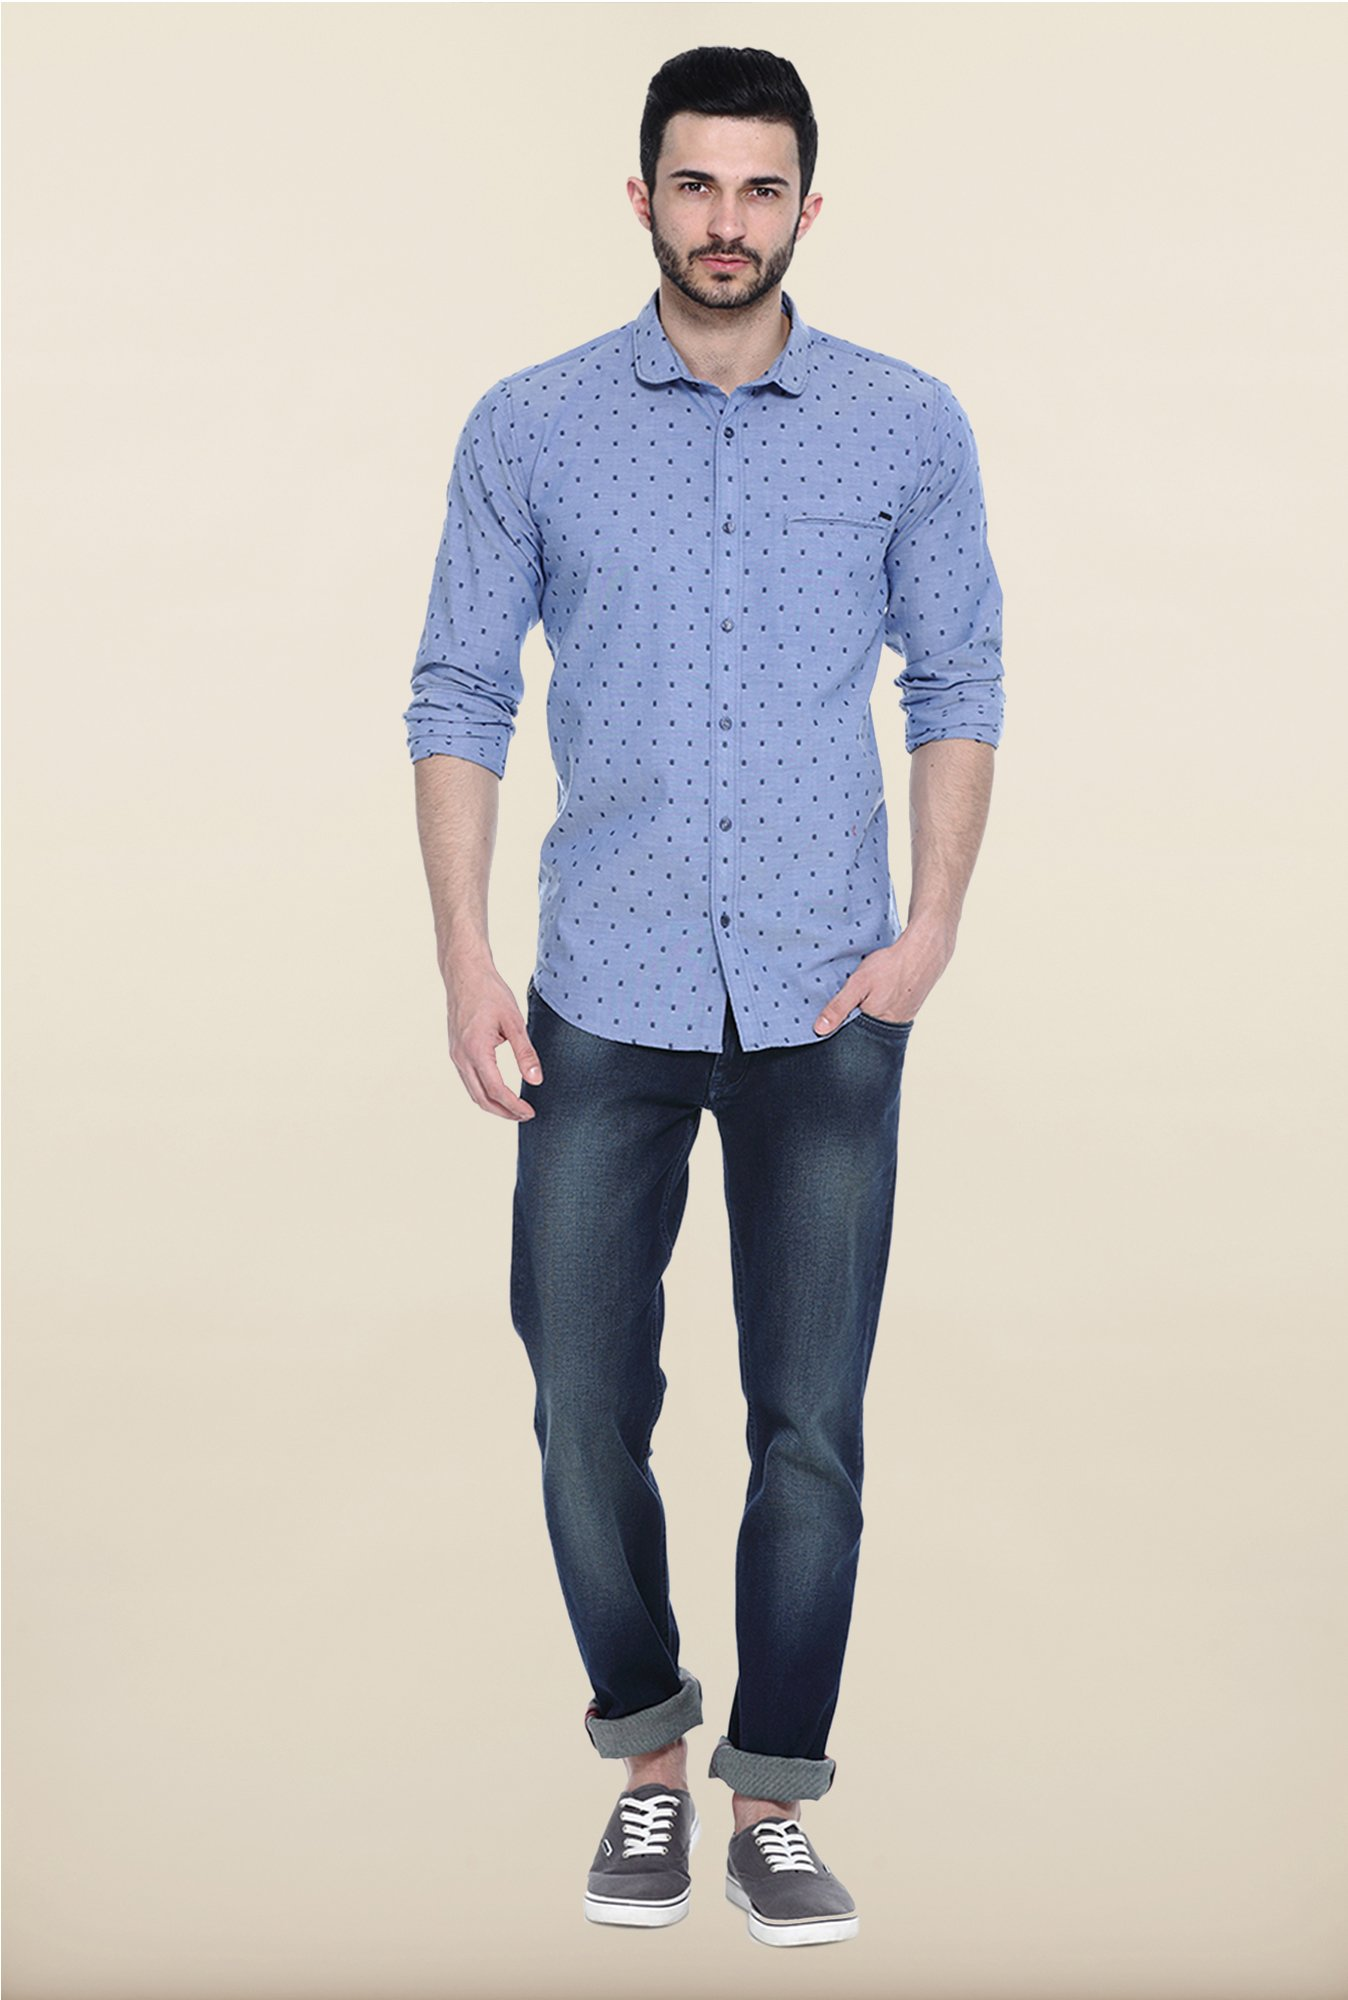 Basics Blue Dot Print Slim Fit Cotton Casual Shirt